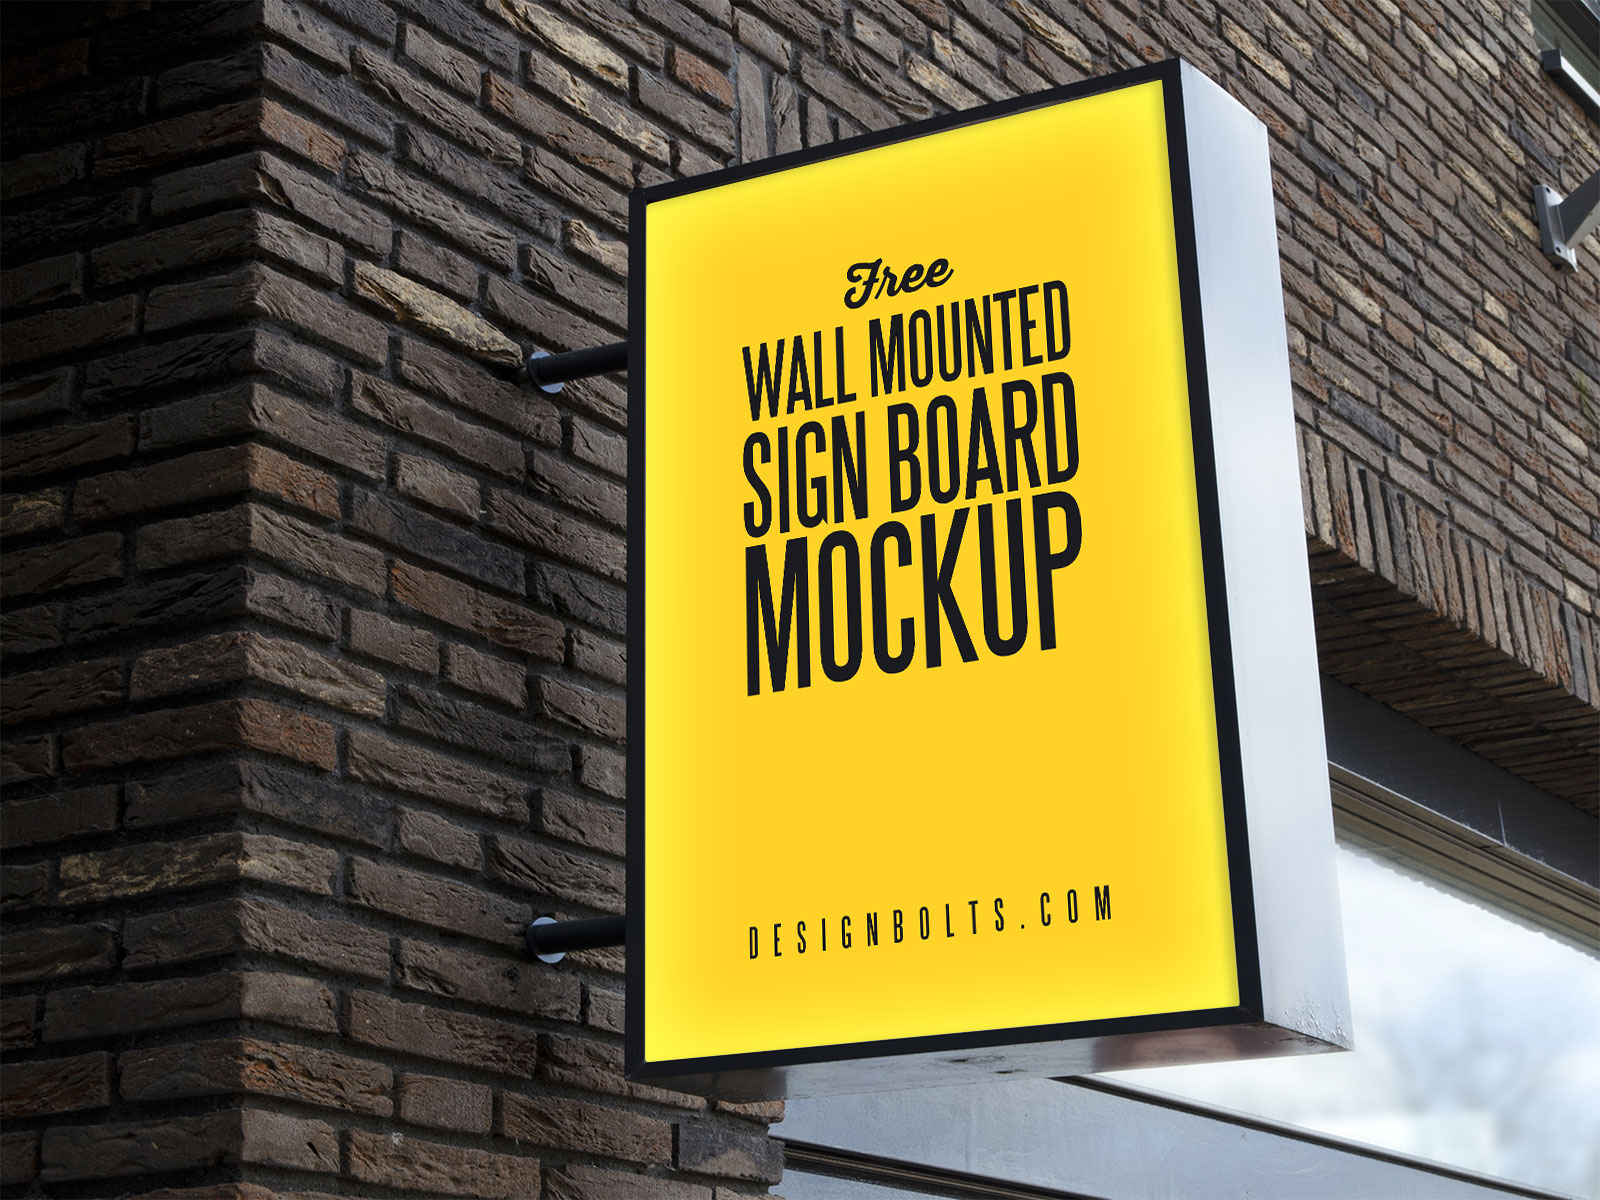 Free-Outdoor-Advertising-Wall-Mounted-Sign-Board-Mockup-PSD-2